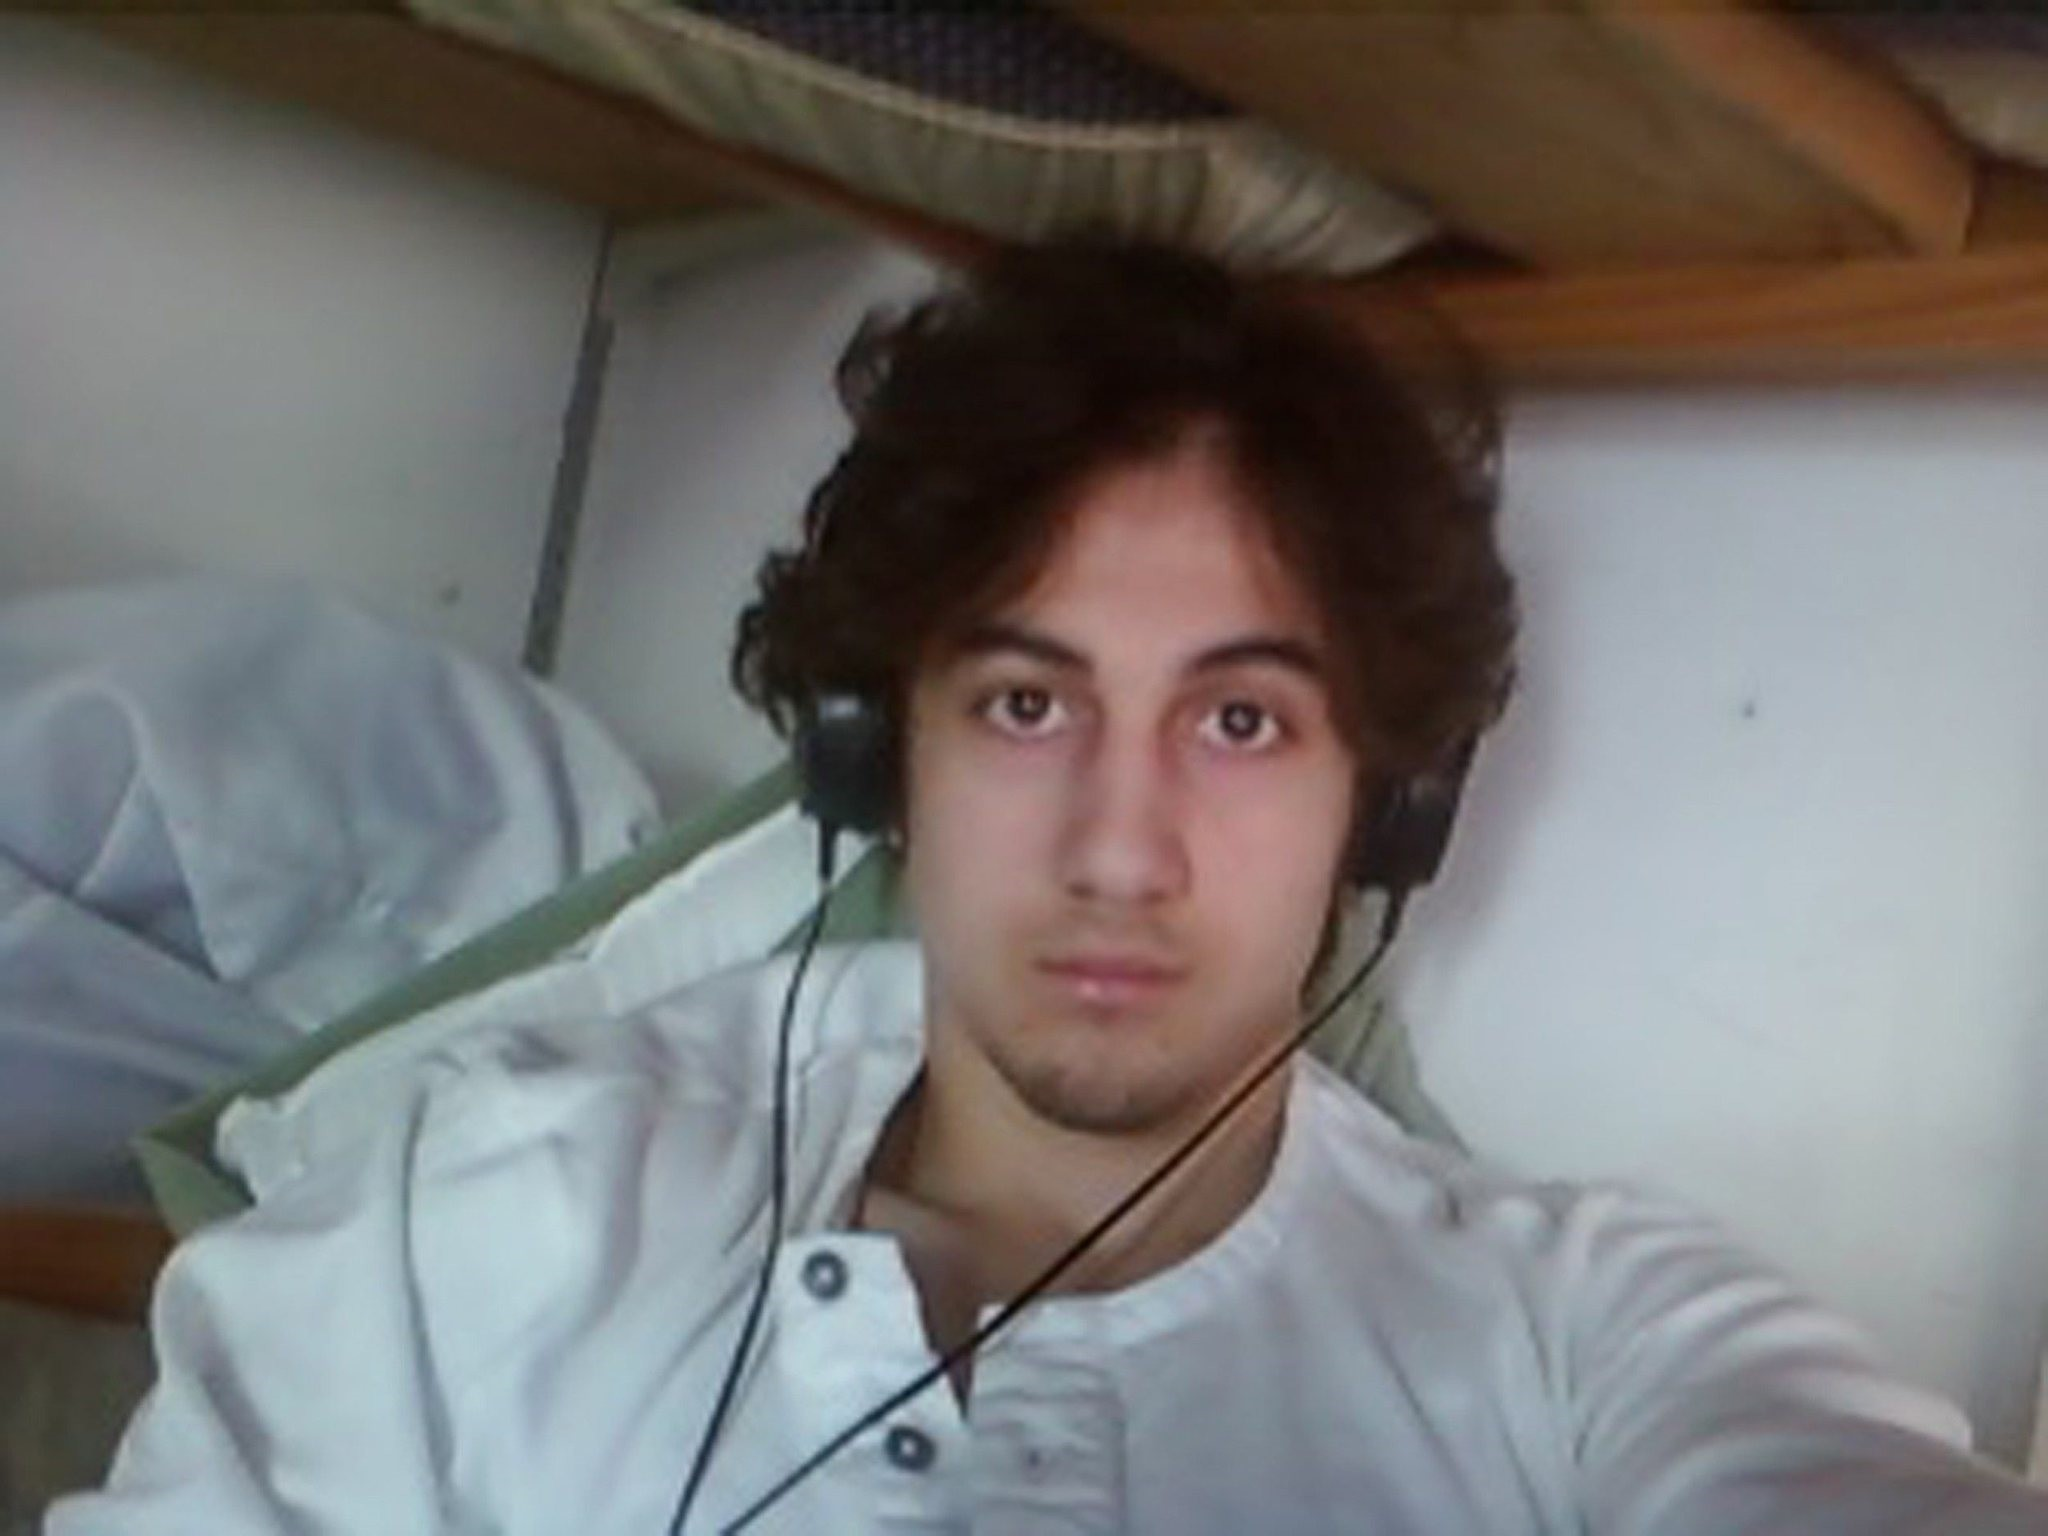 This handout image, courtesy of the US Department of Justice/US Attorneyu2019s Office u2013 District of Massachusetts shows Dzhokhar Tsarnaev, convicted bomber of the Boston Marathon on April 15, 2013. (AFP Photo)